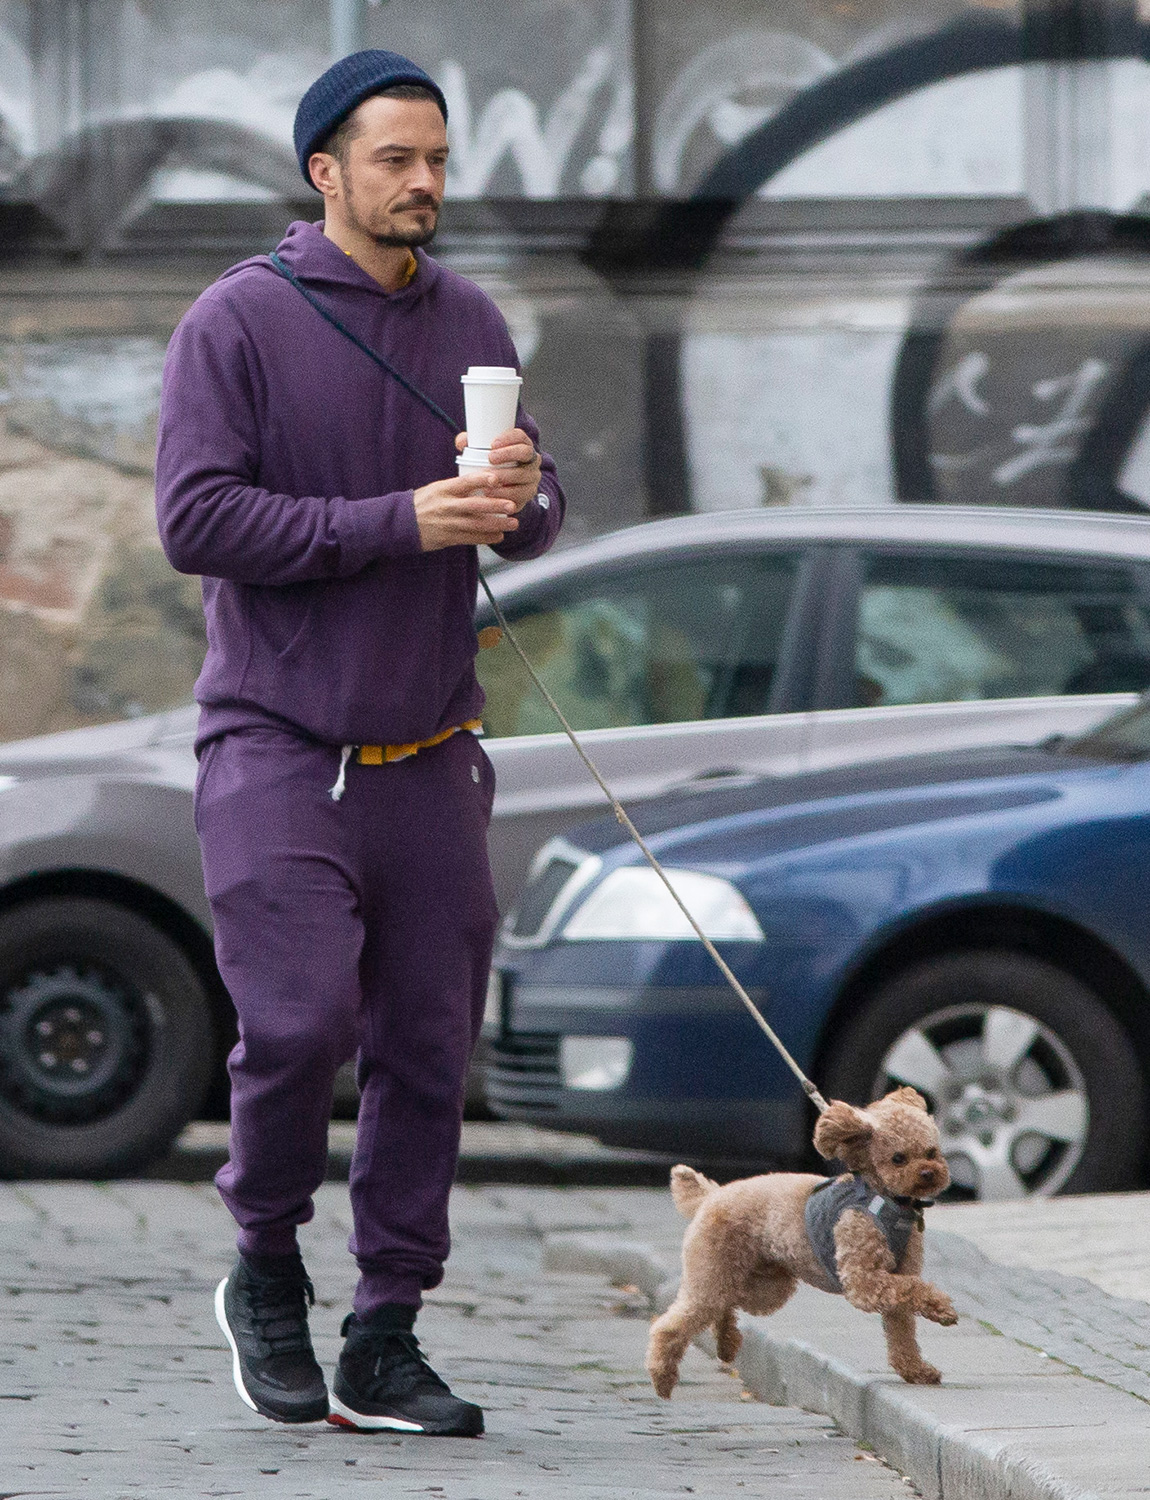 Orlando Bloom takes his dog Mighty out for a walk in Prague, Czech Republic